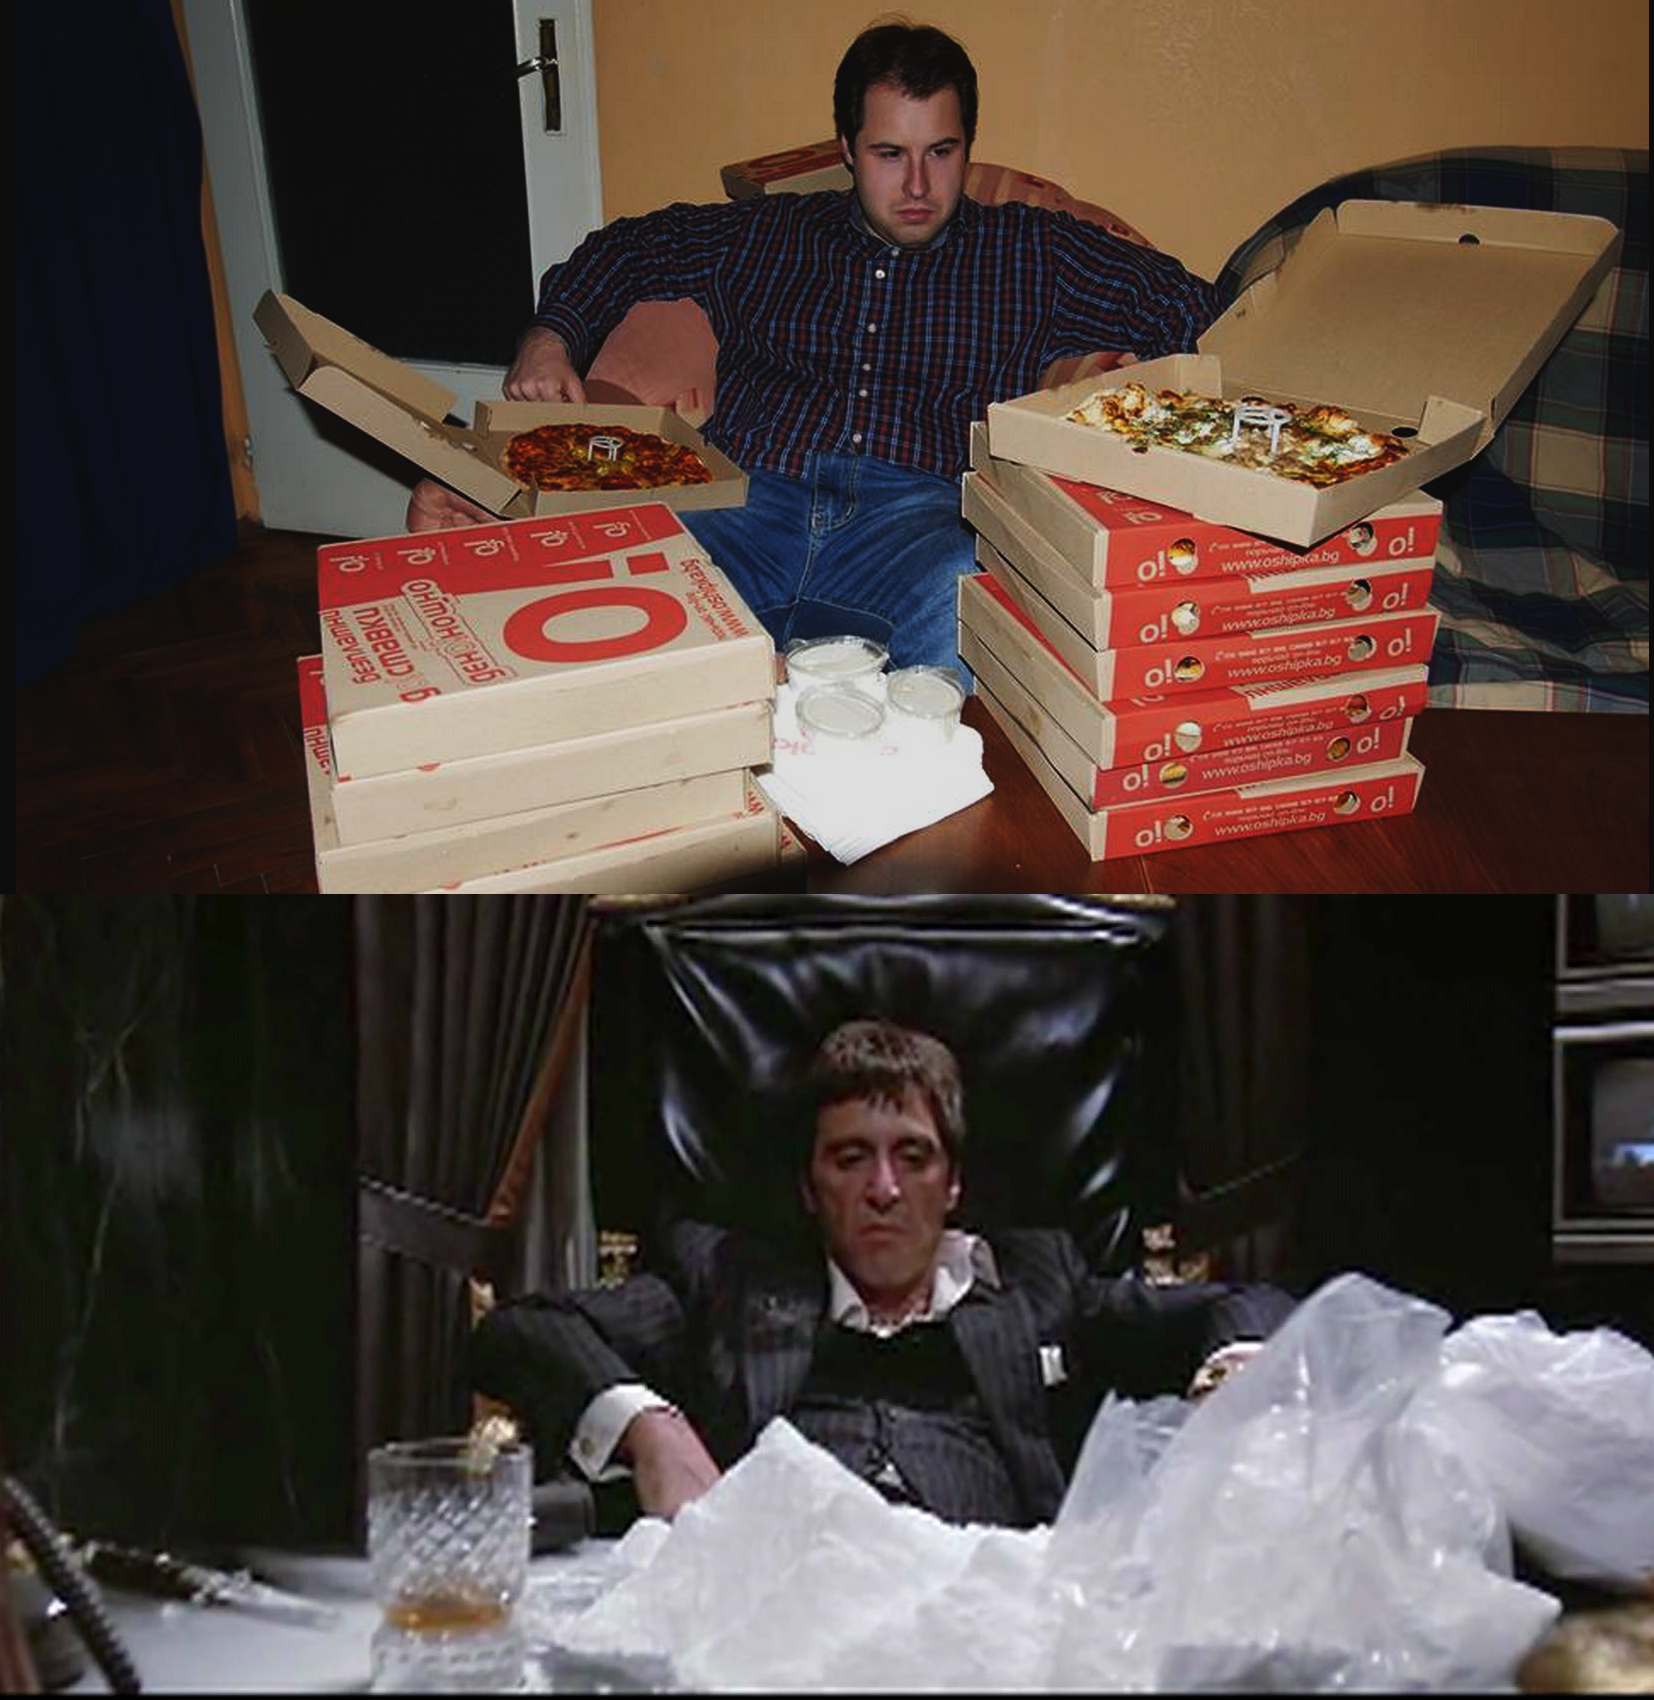 6 - Man sitting with his pizza boxes juxtaposed to a screen shot on Tony Montana from Scarface.